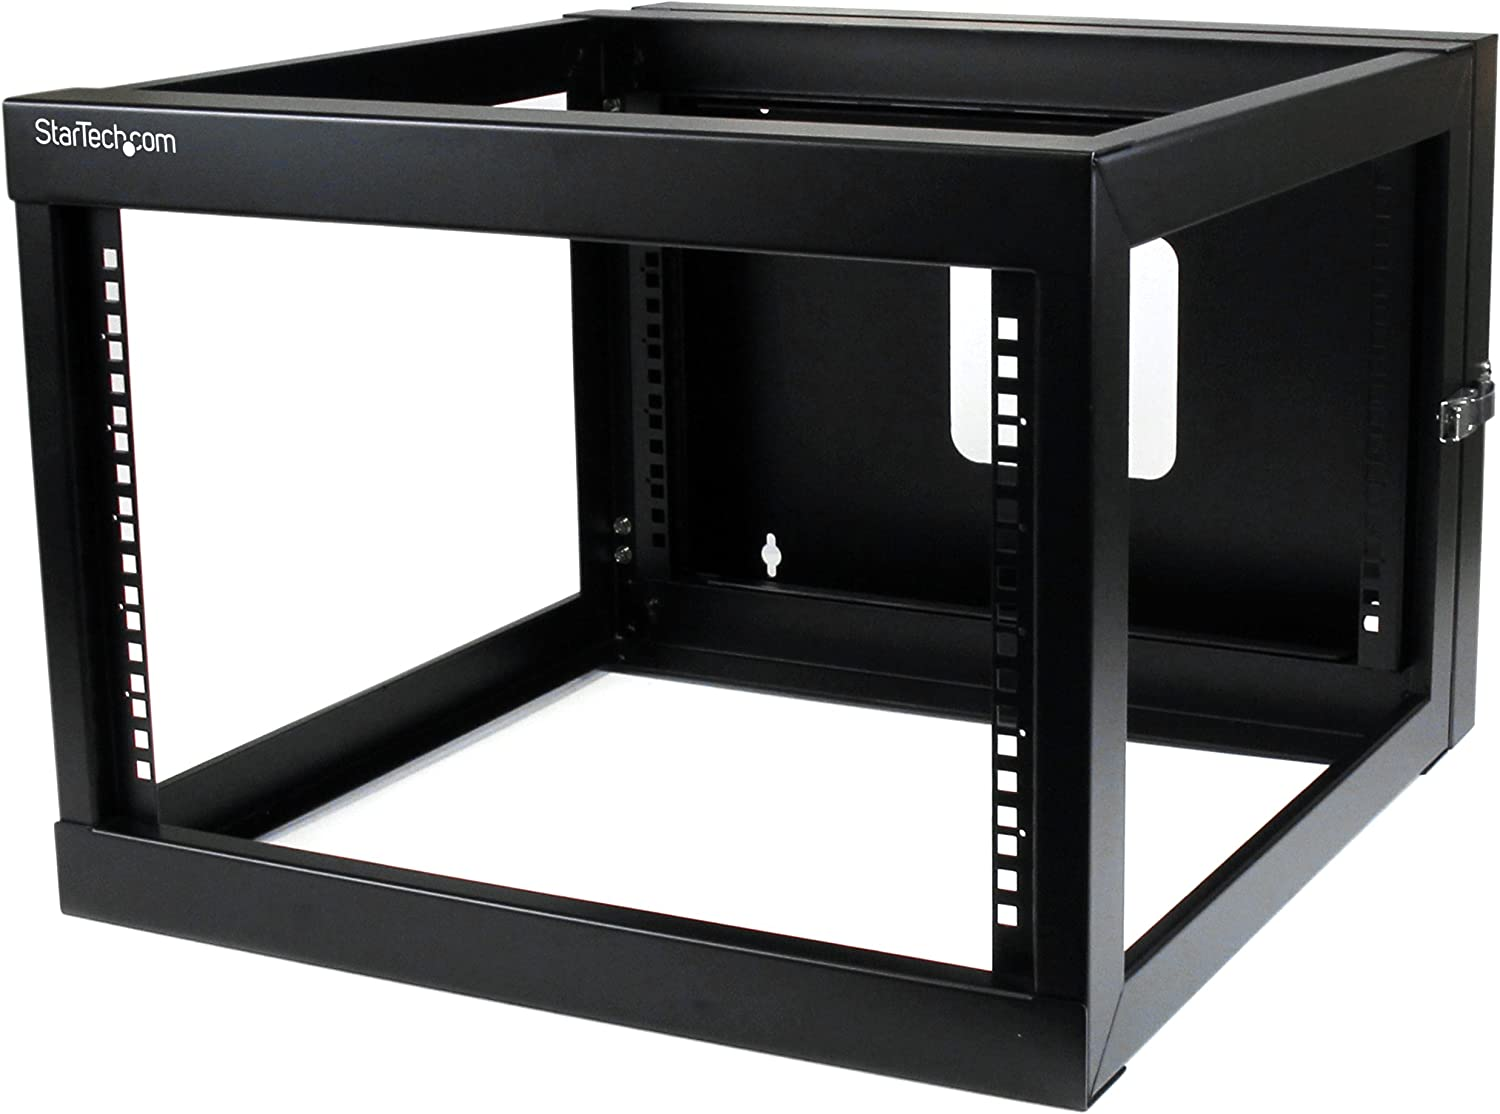 "StarTech.com 6U Hinged Open Frame Wall Mount Network Rack - 4-Post 22"" Depth Swing Out Computer Equipment Rack - 110lbs capacity (RK619WALLOH),Black"